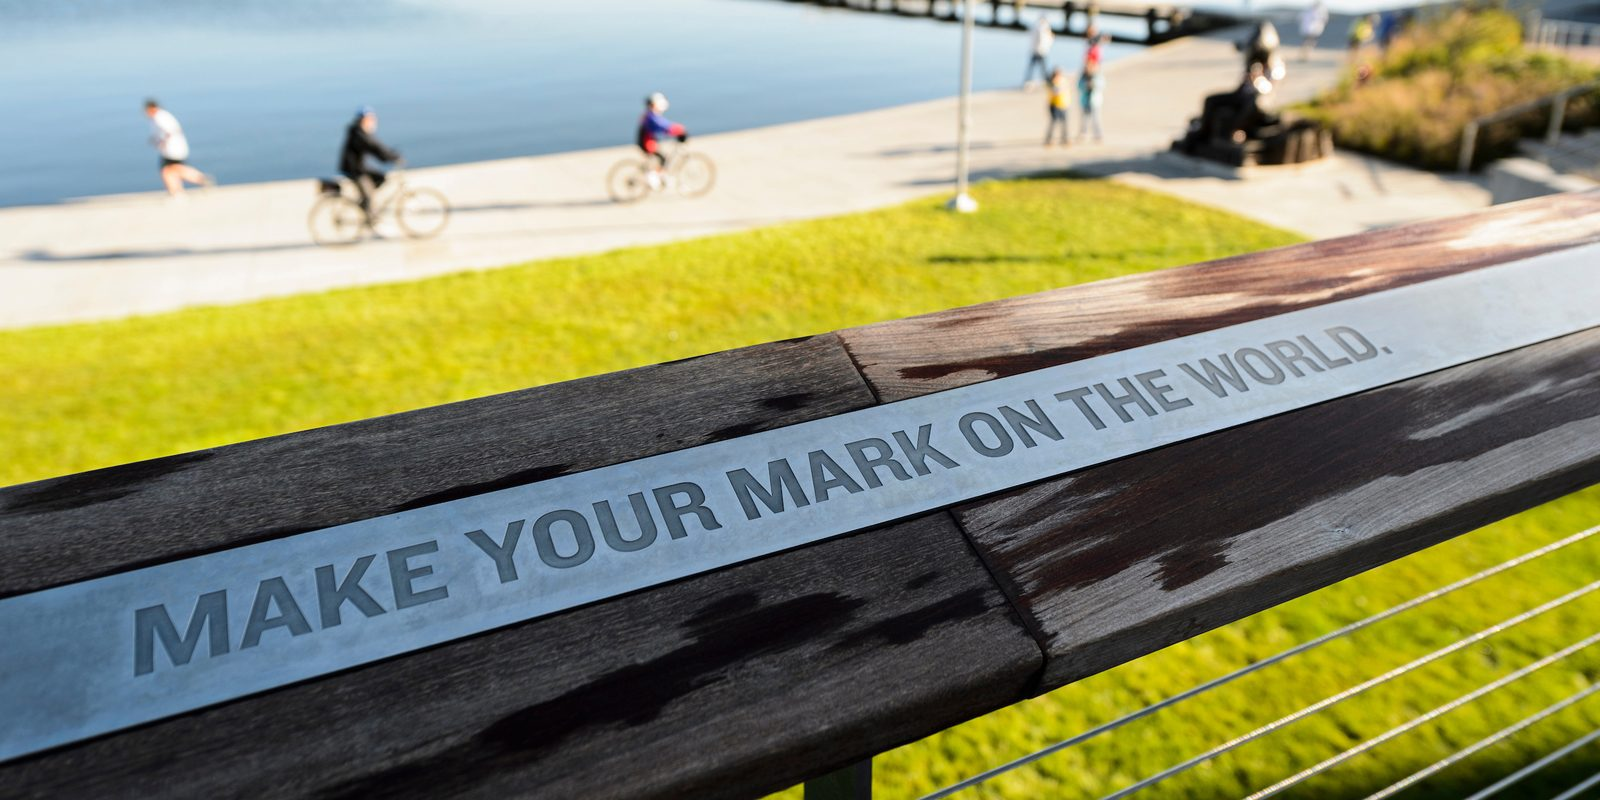 Make Your Mark On The World 1600X800 10 23 17